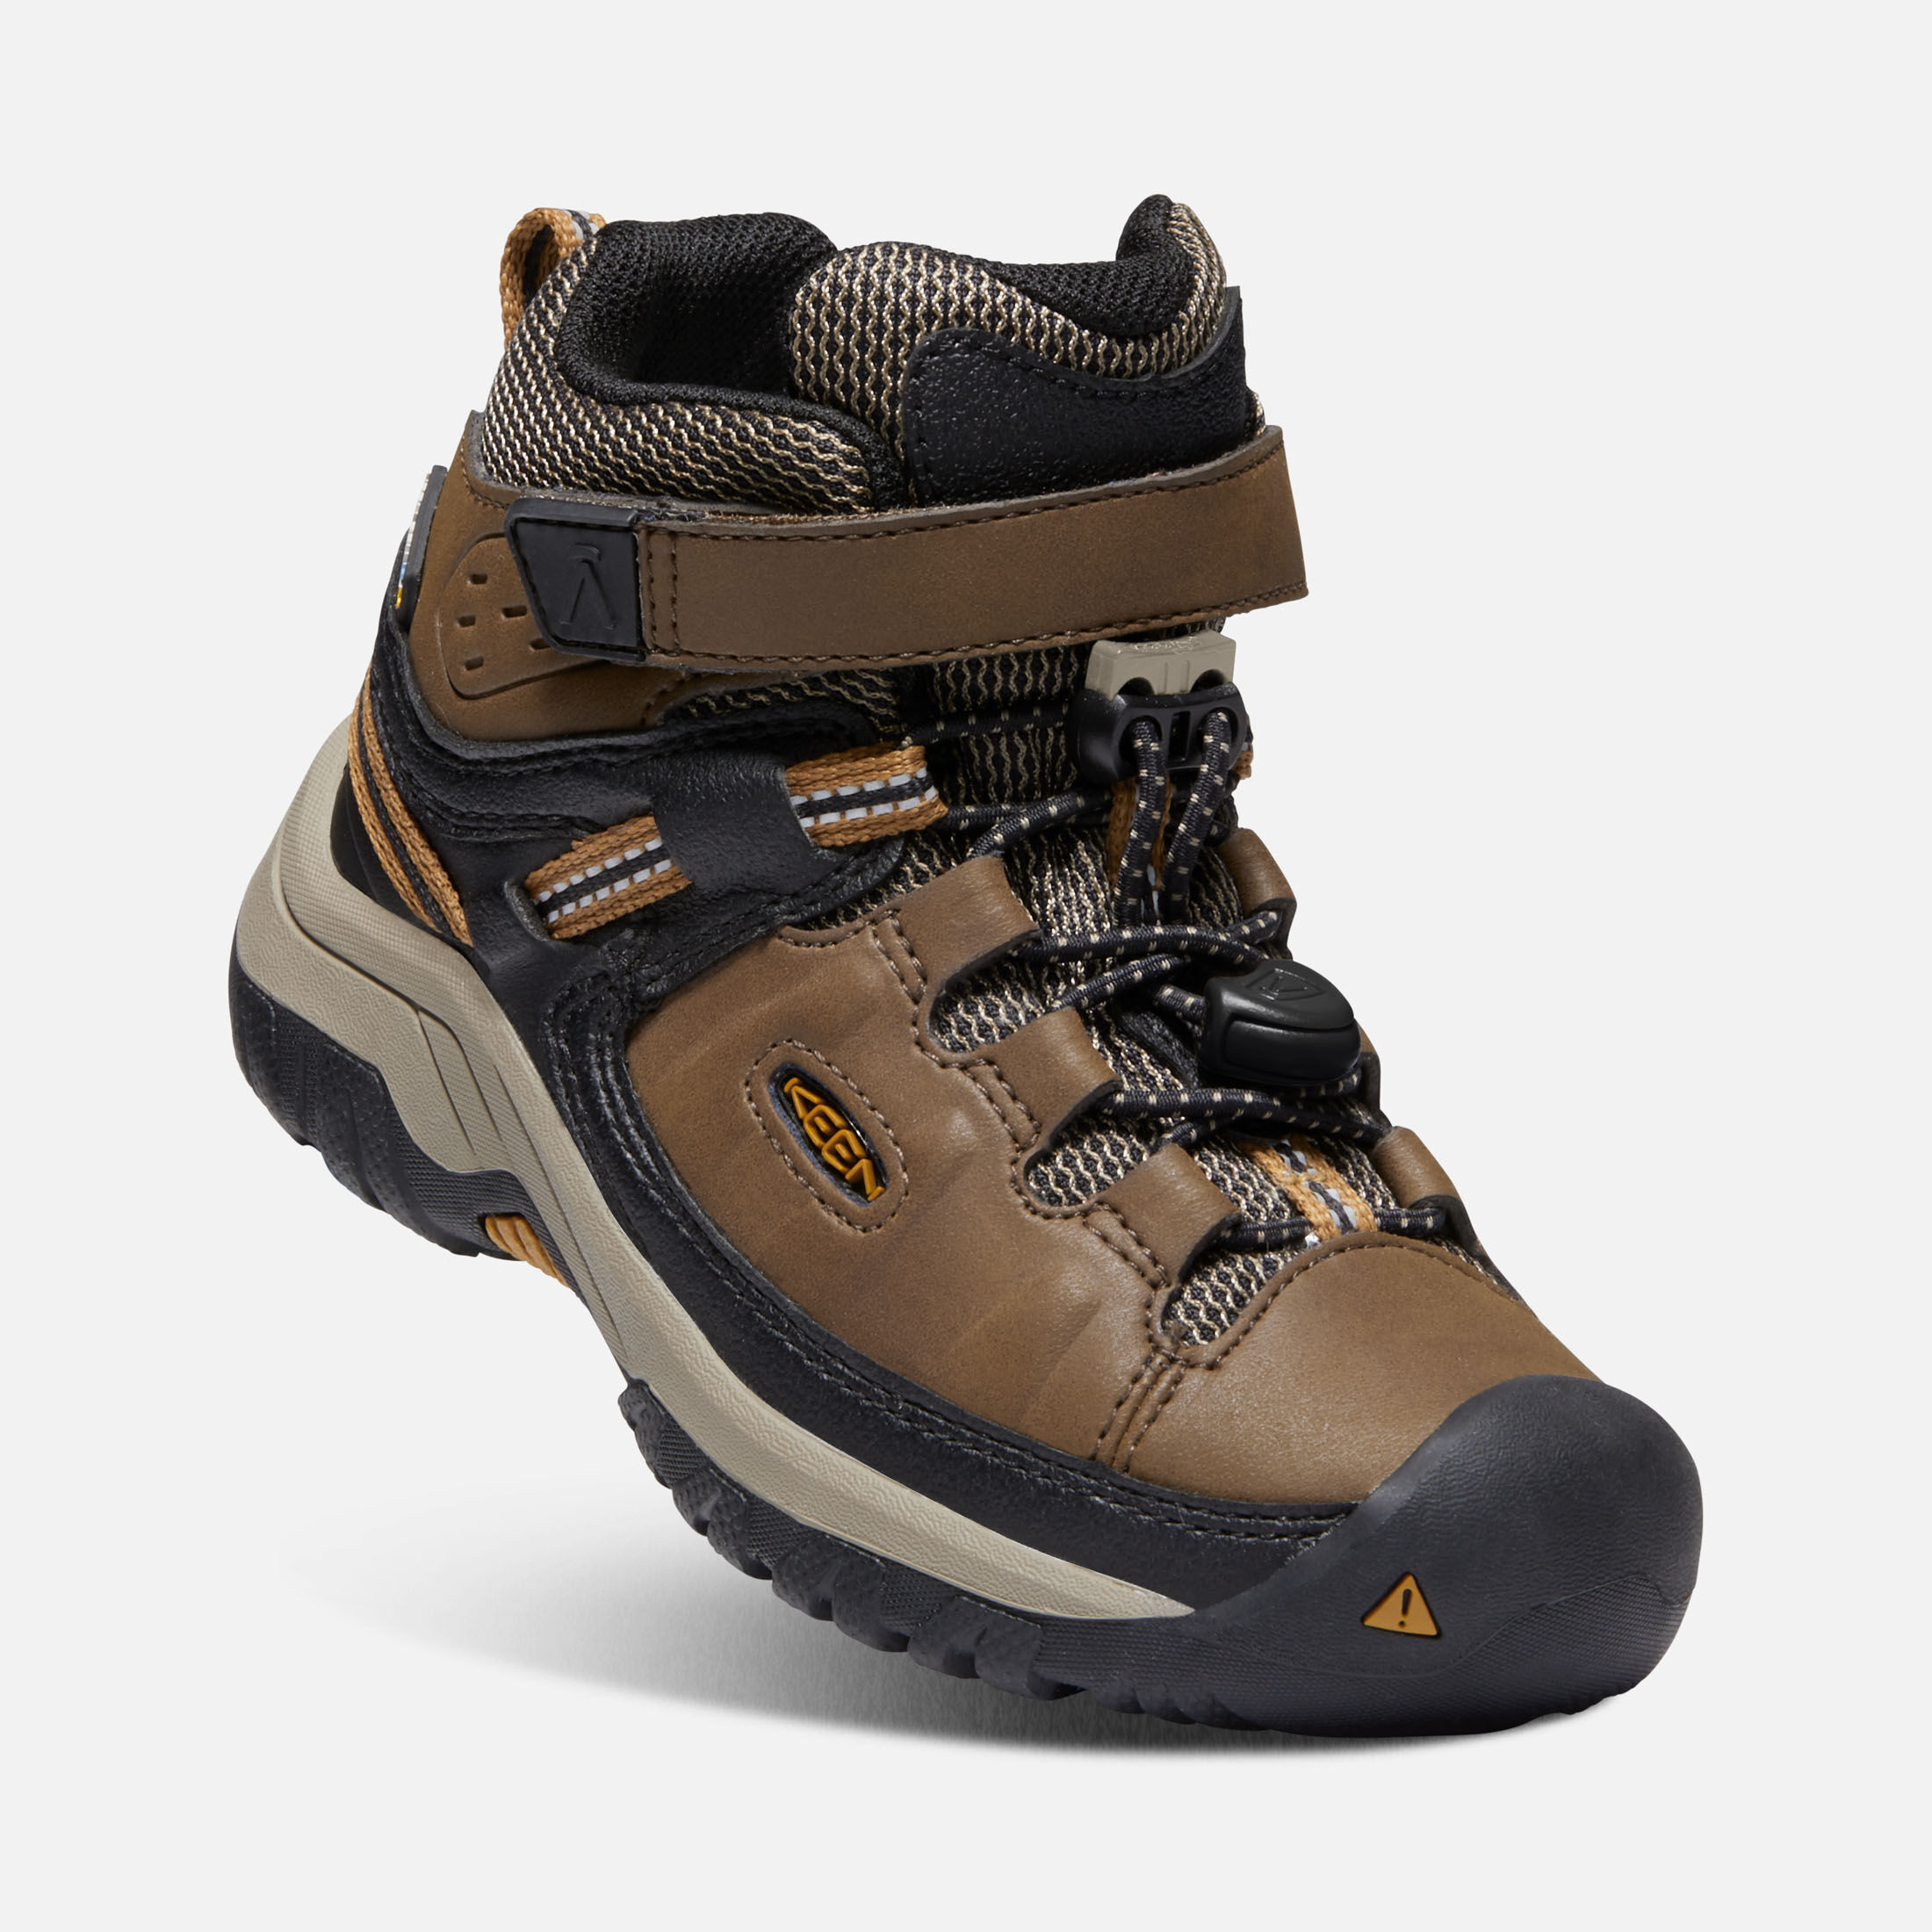 Younger Kids' Waterproof Hiking Boots